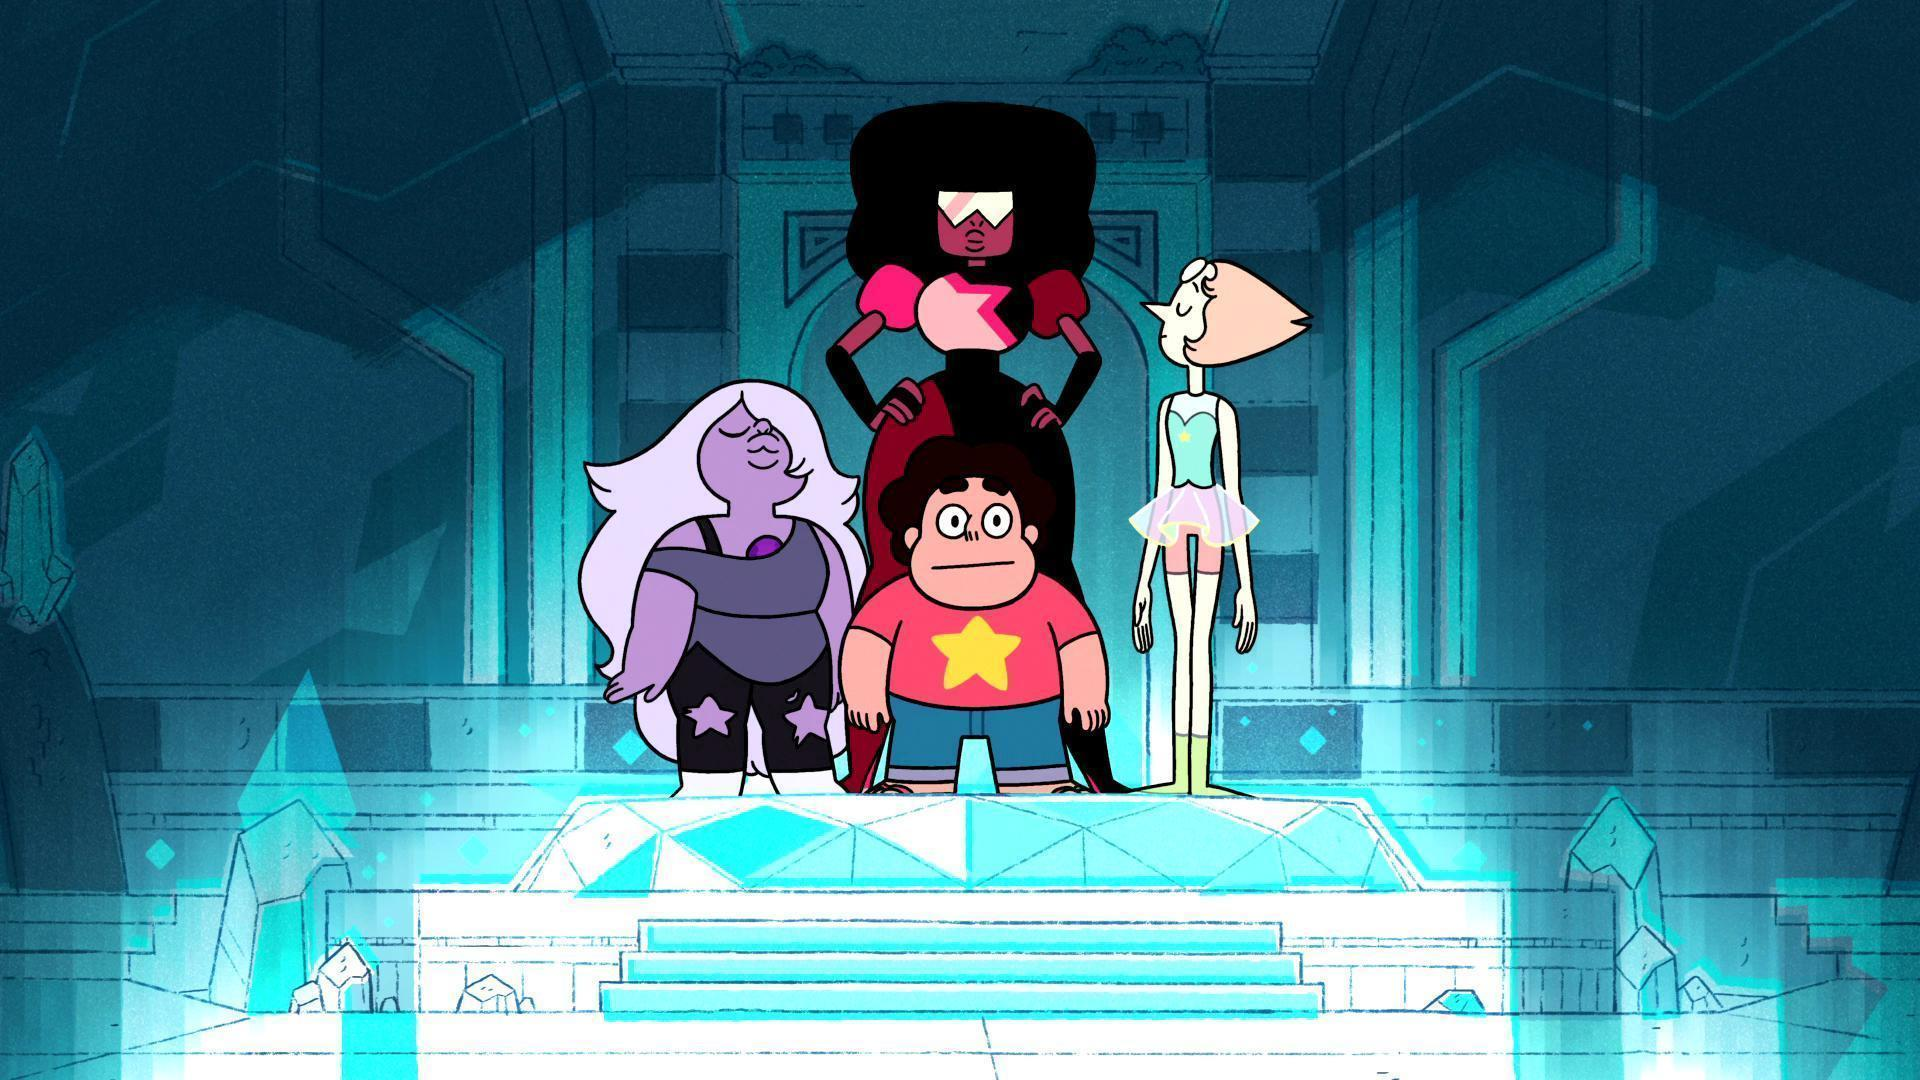 Steven Wallpapers Group